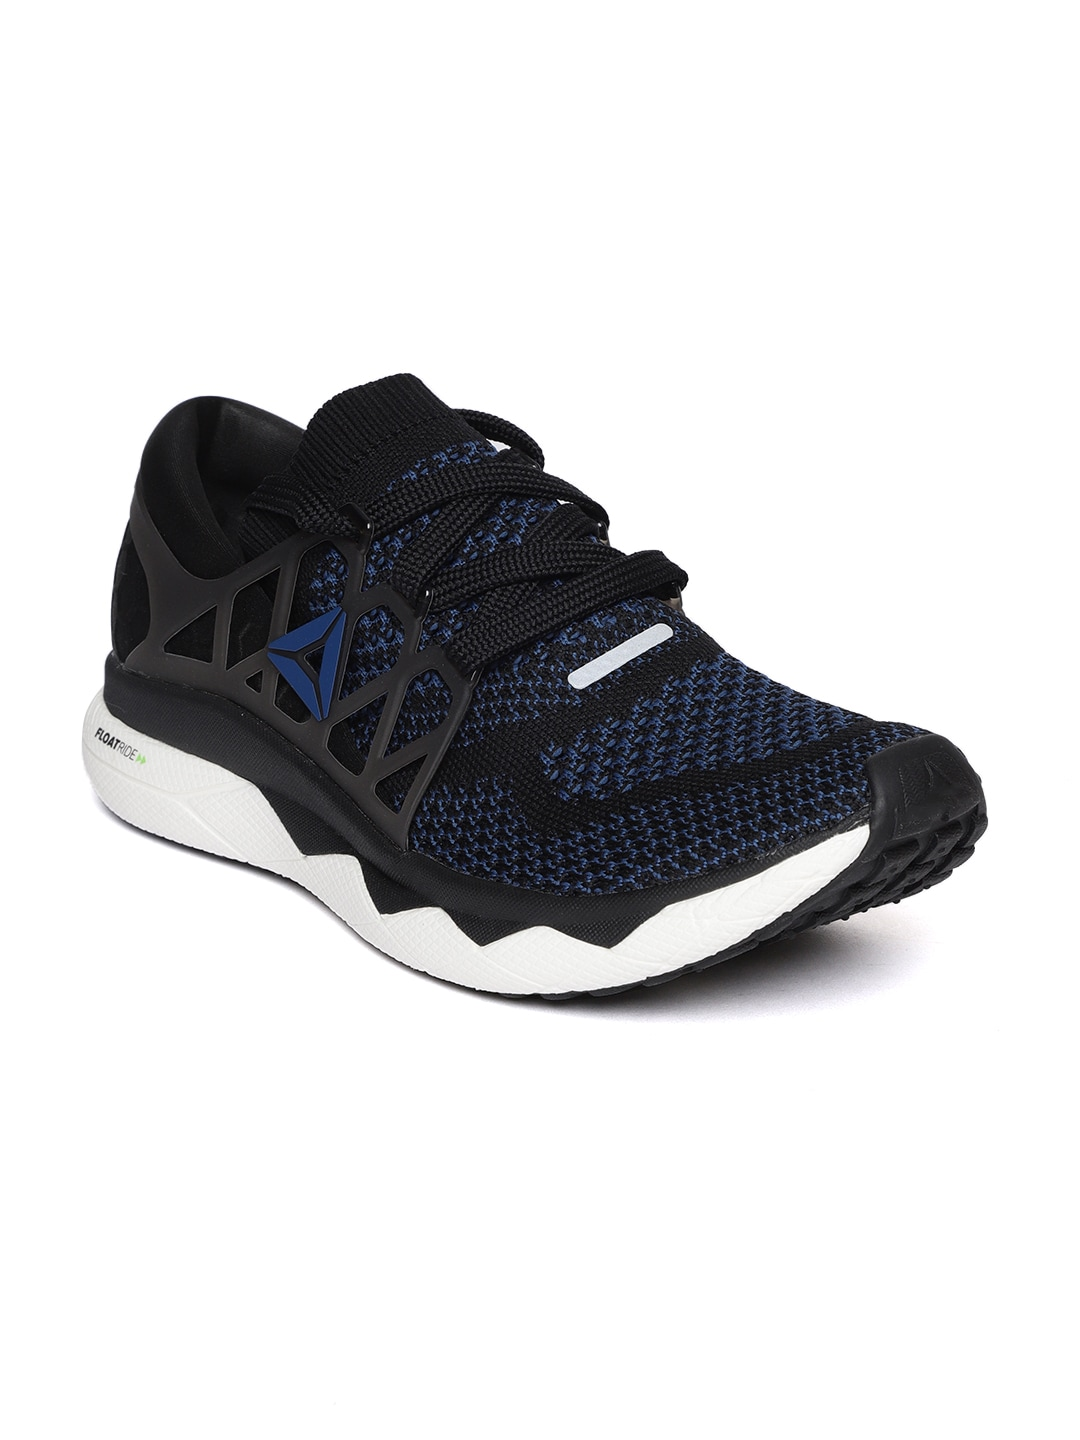 b4d85272747 Reebok Shoes - Buy Reebok Shoes For Men   Women Online